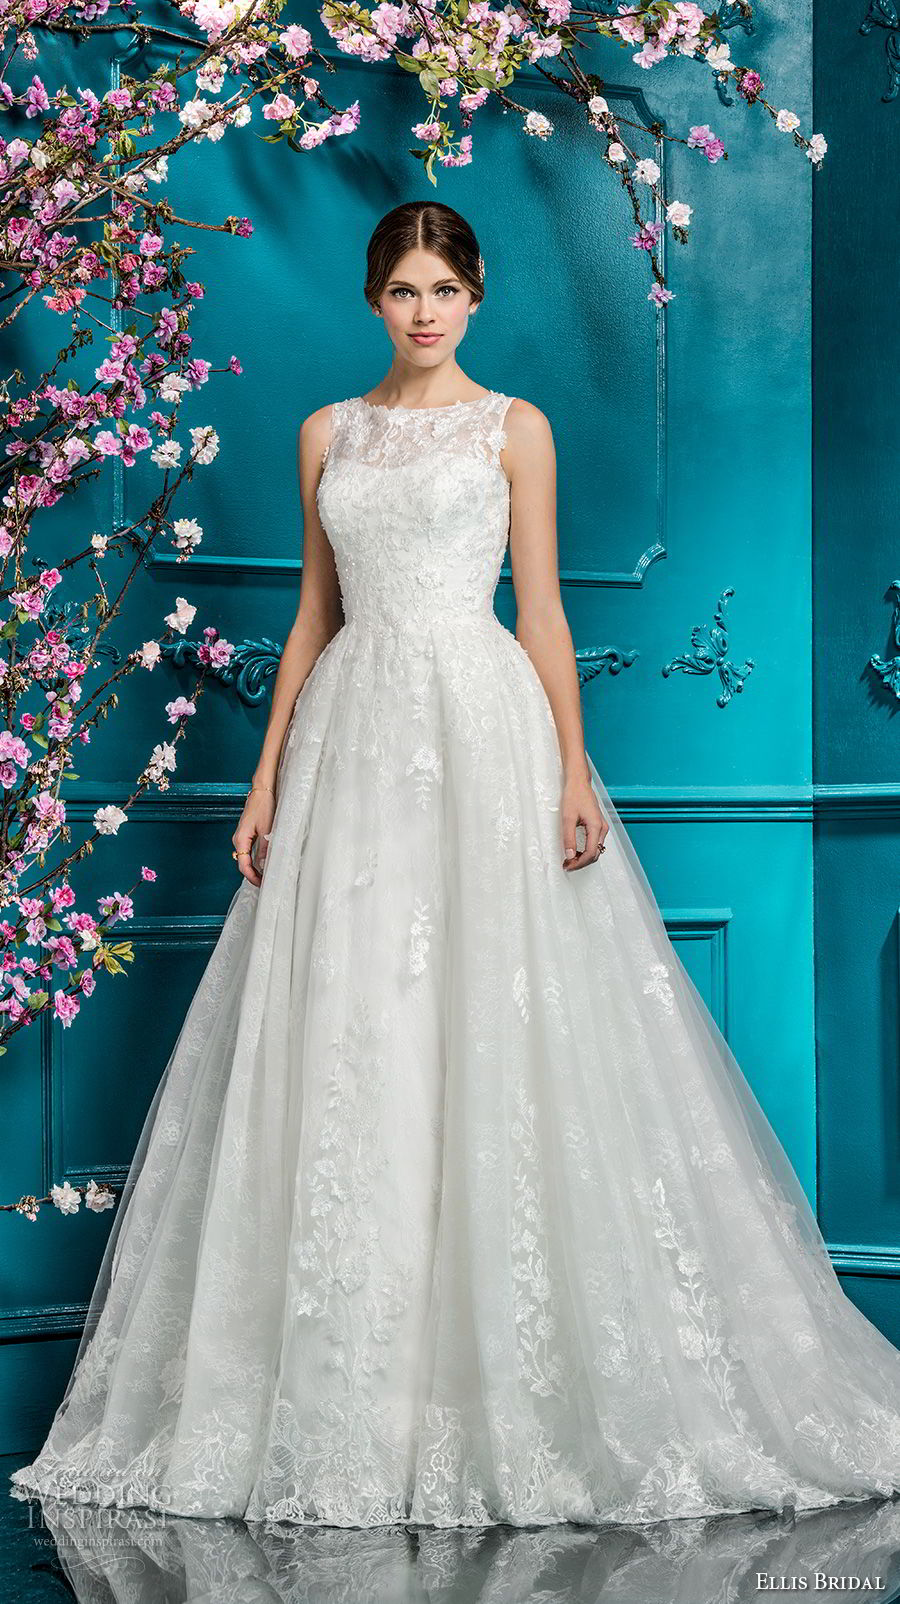 ellis bridals 2018 sleeveless illusion jewel sweetheart neckline full embellishment romantic a line wedding dress covered lace back chapel train (16) mv